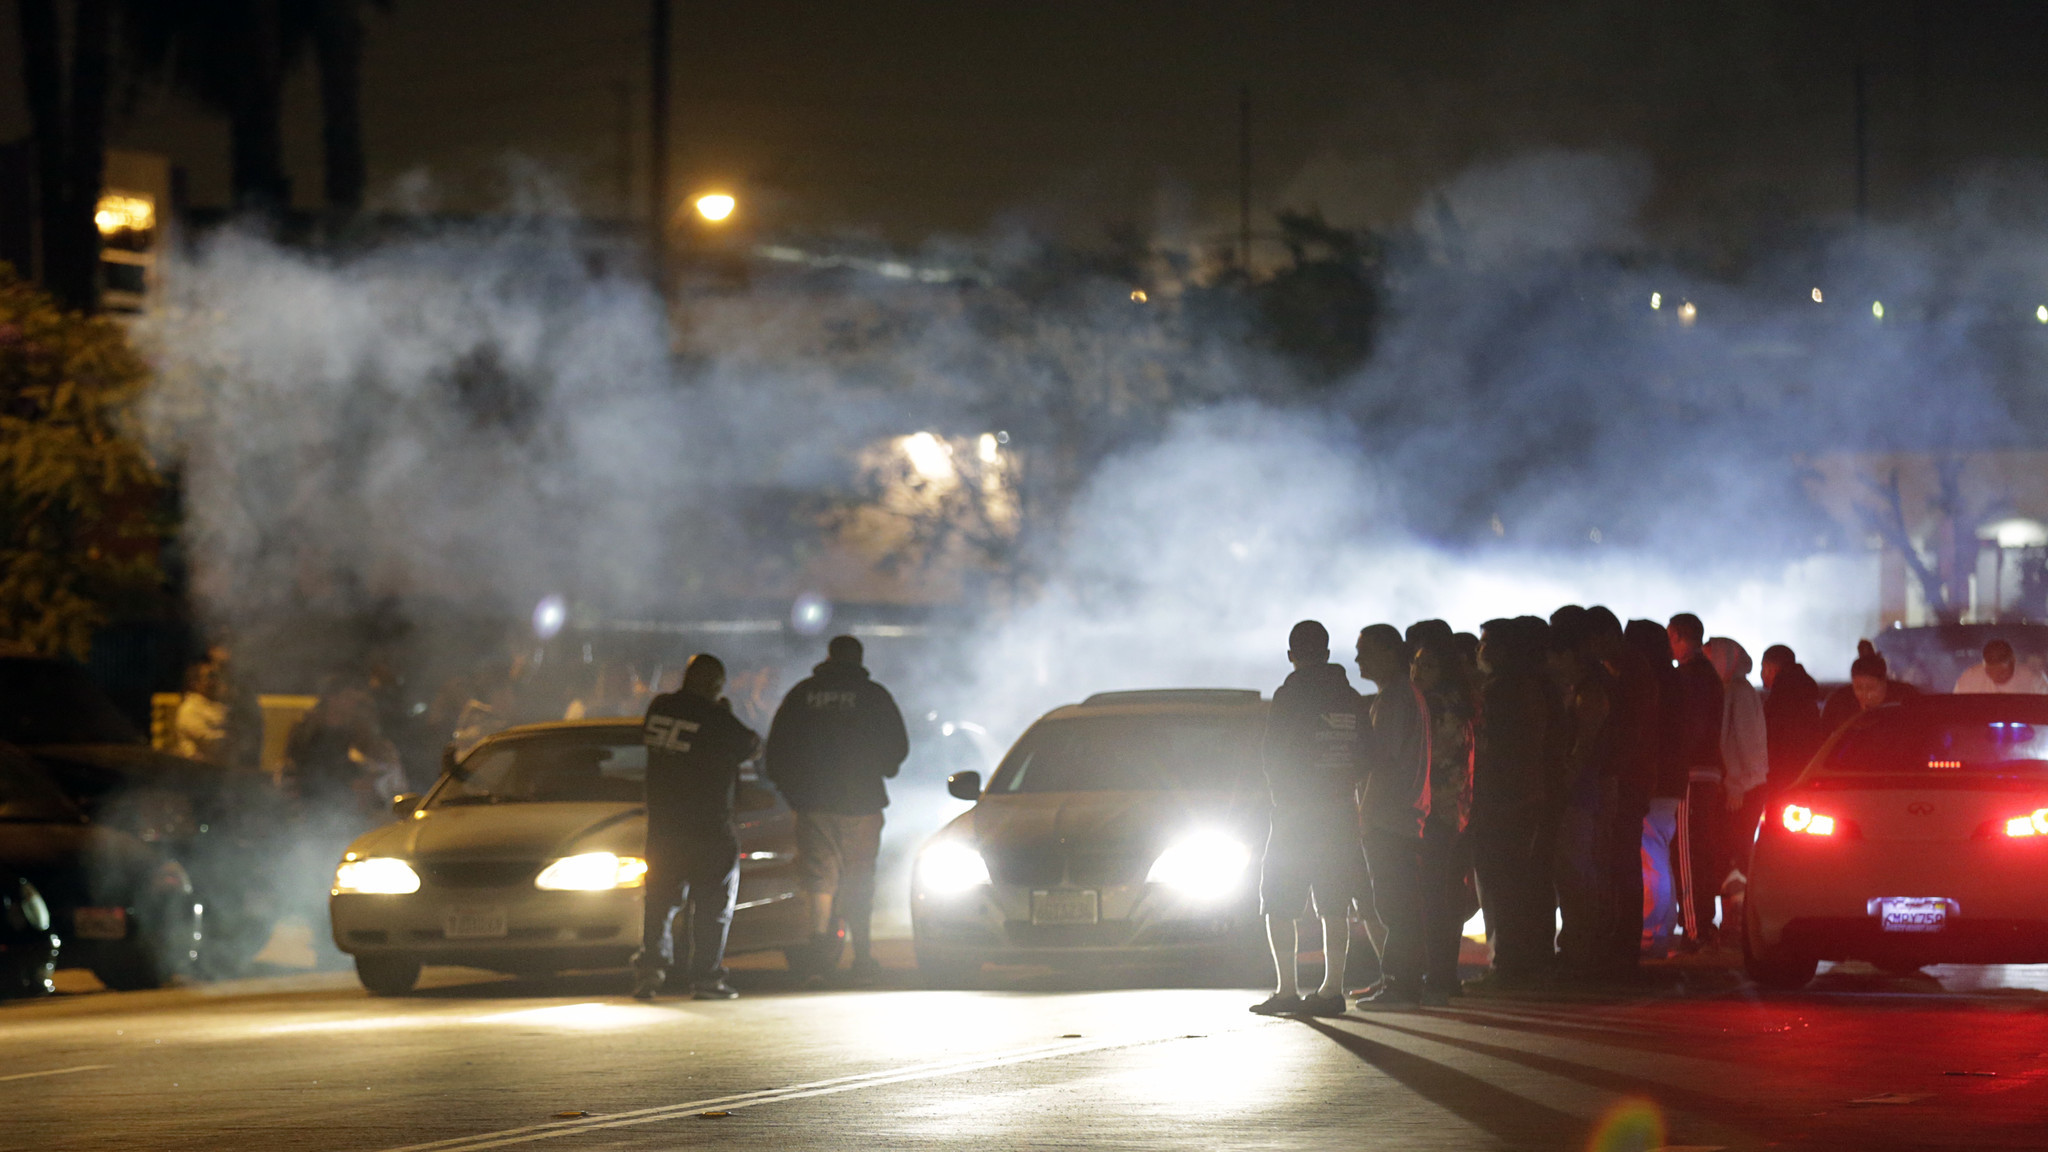 Out of control: The deadly toll of street racing in Los Angeles